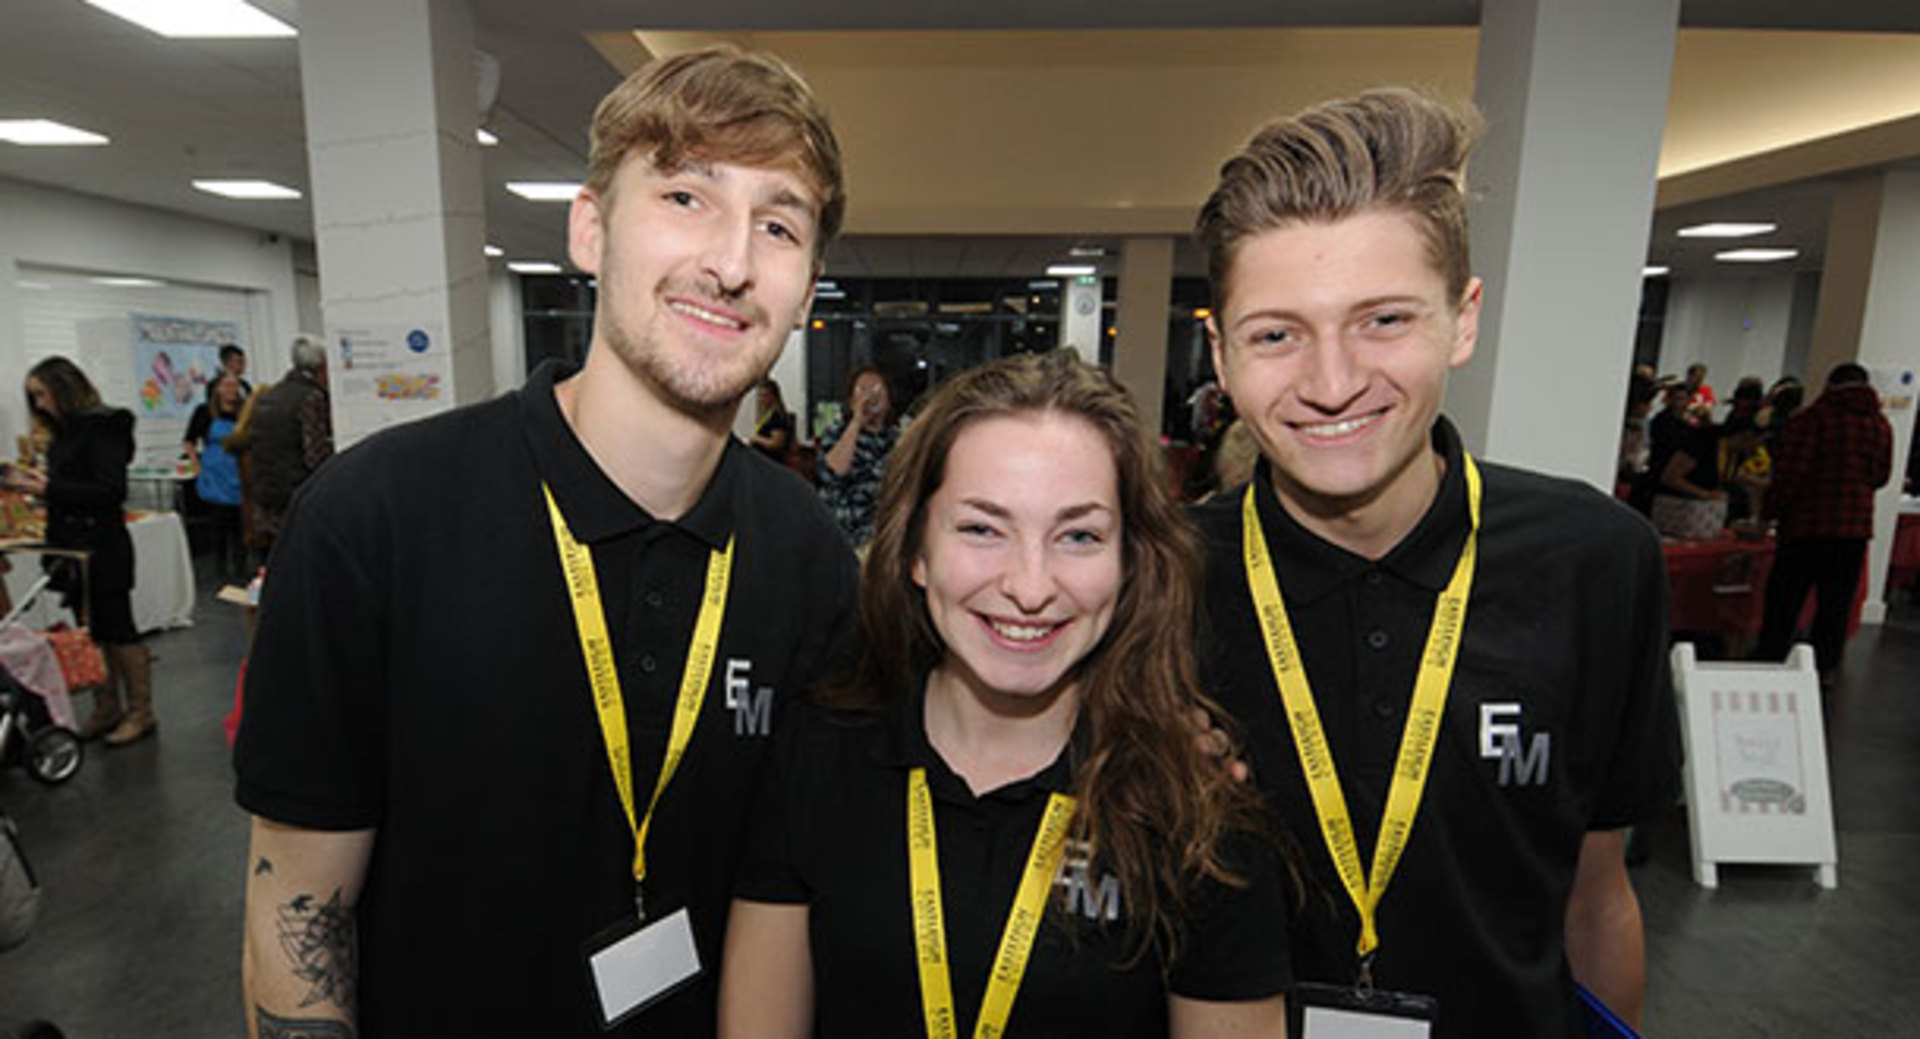 Students end their Year on a high note raising over £2,000 for four local charities